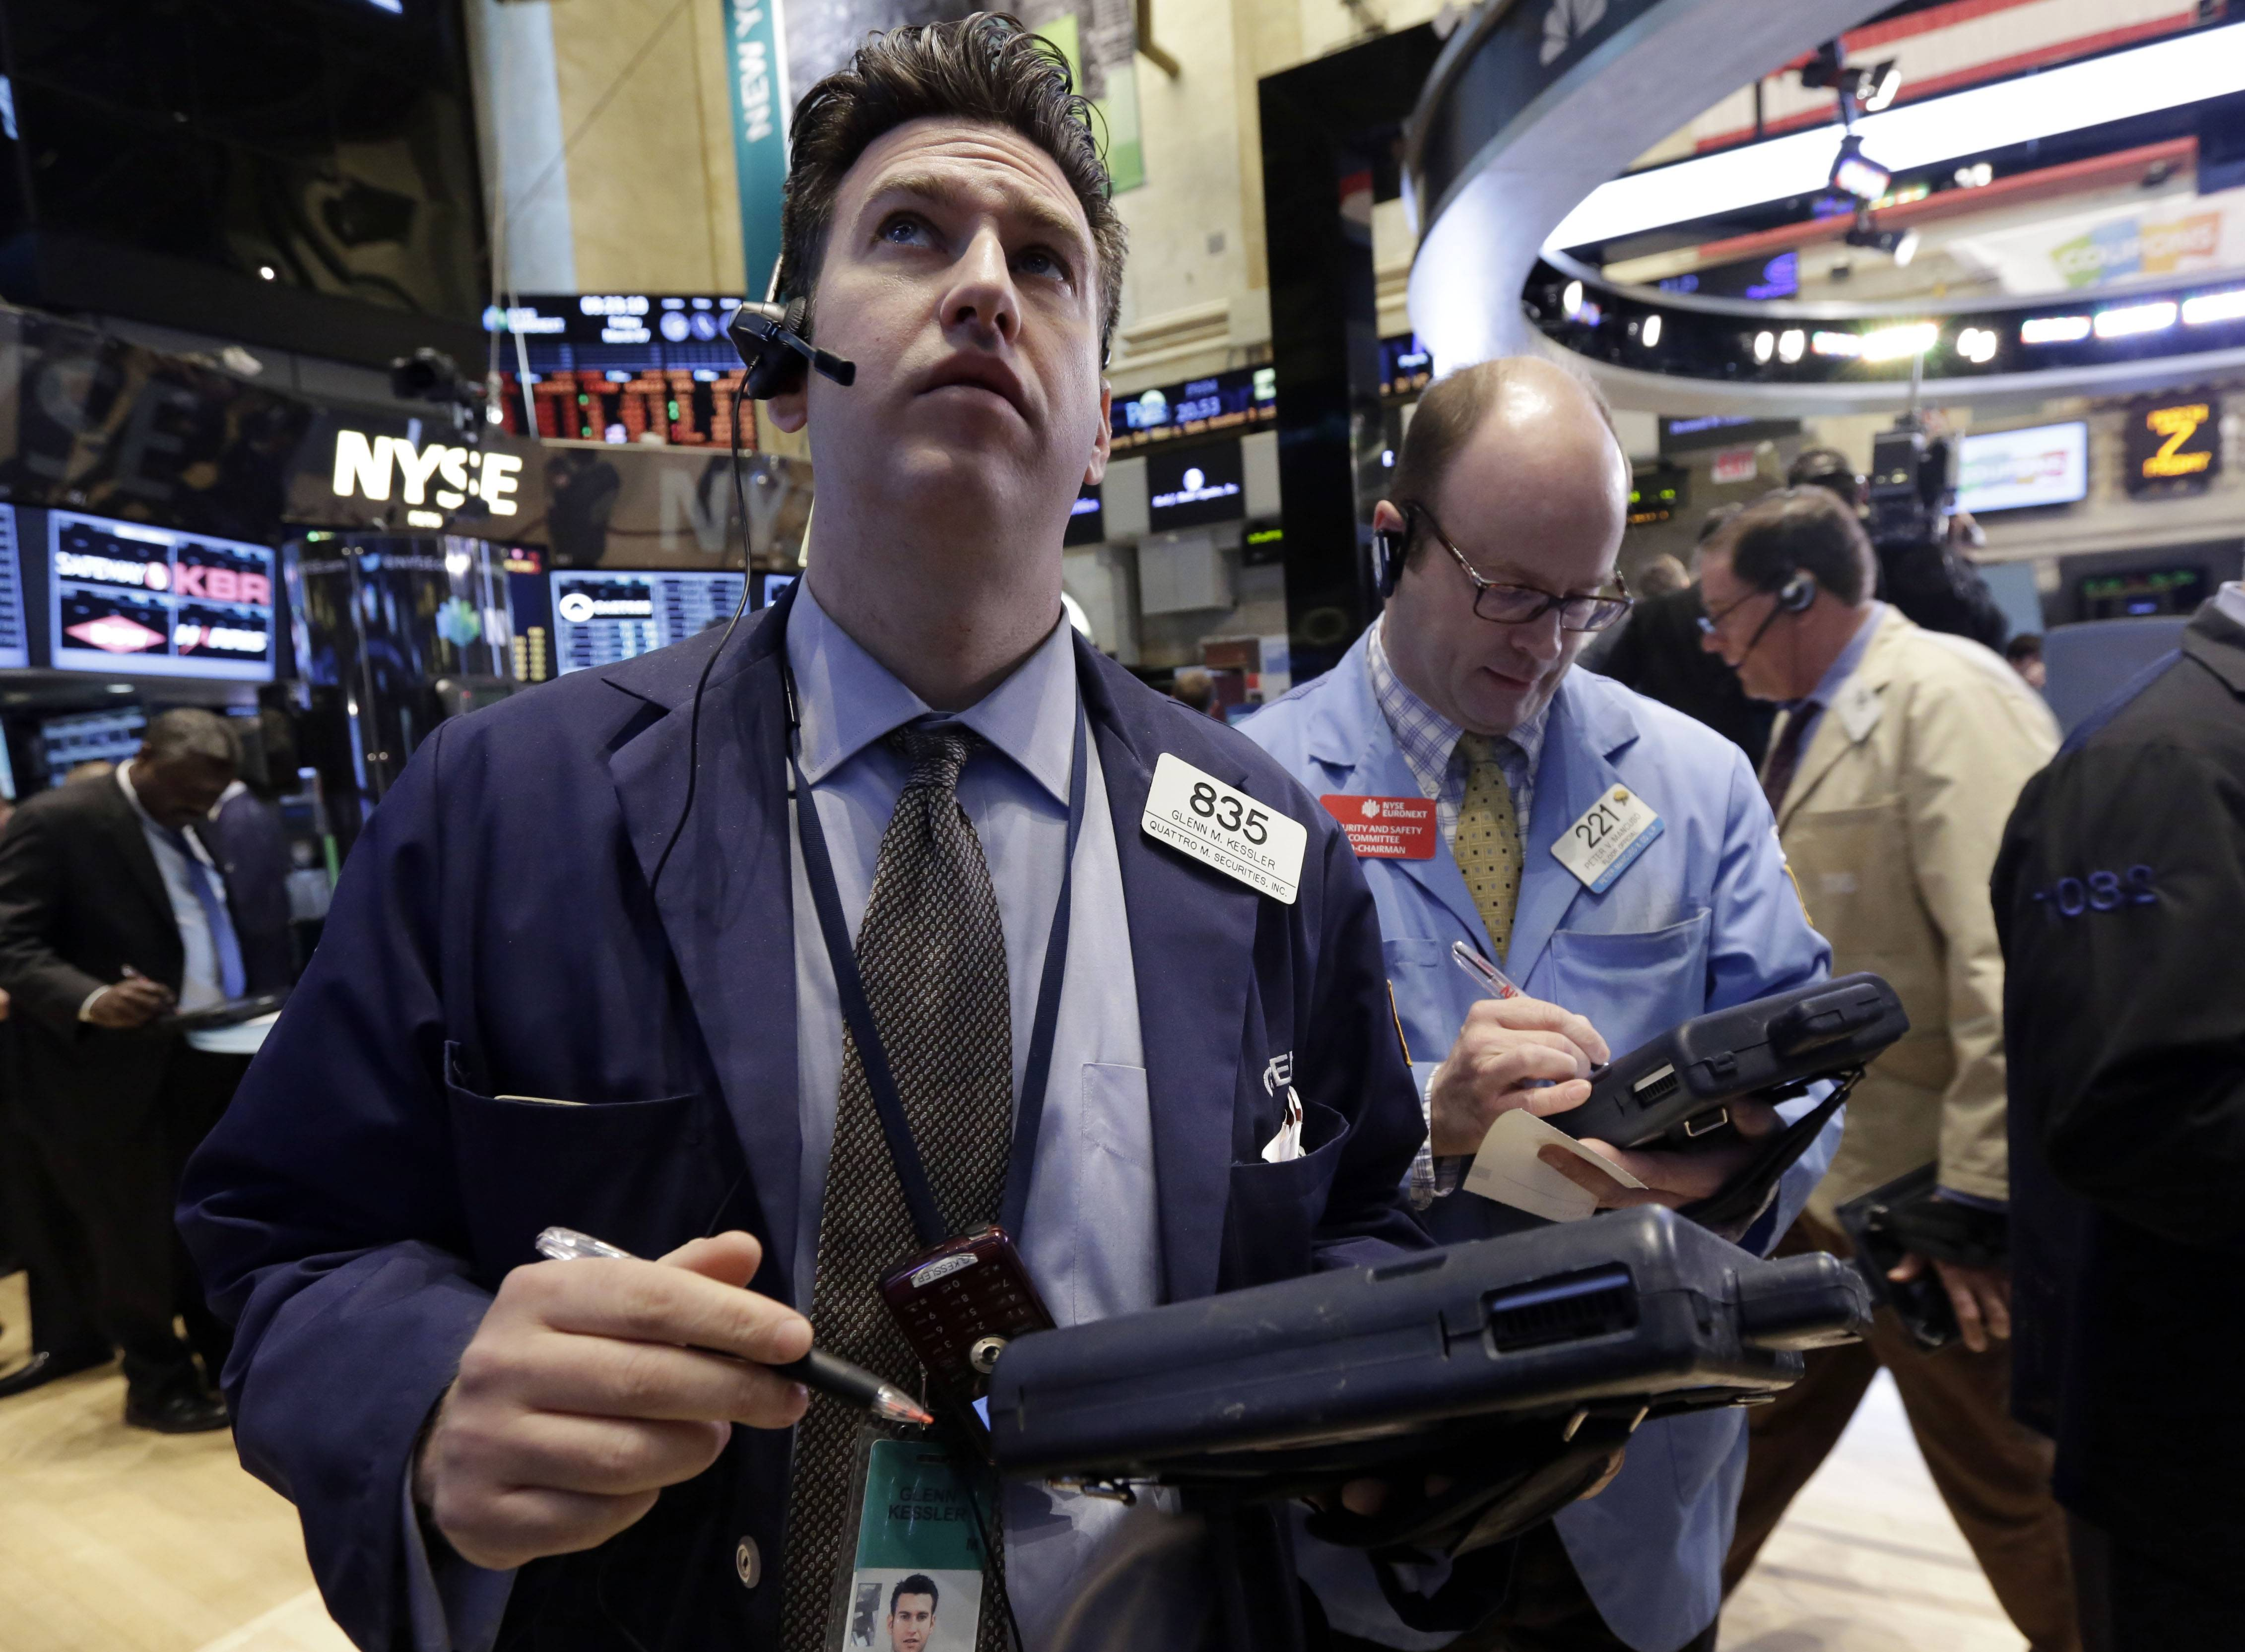 Stocks fell Tuesday, after the Standard & Poor's 500 Index climbed to a record last week, as commodity shares slumped with copper and oil prices amid concern over China's economy.